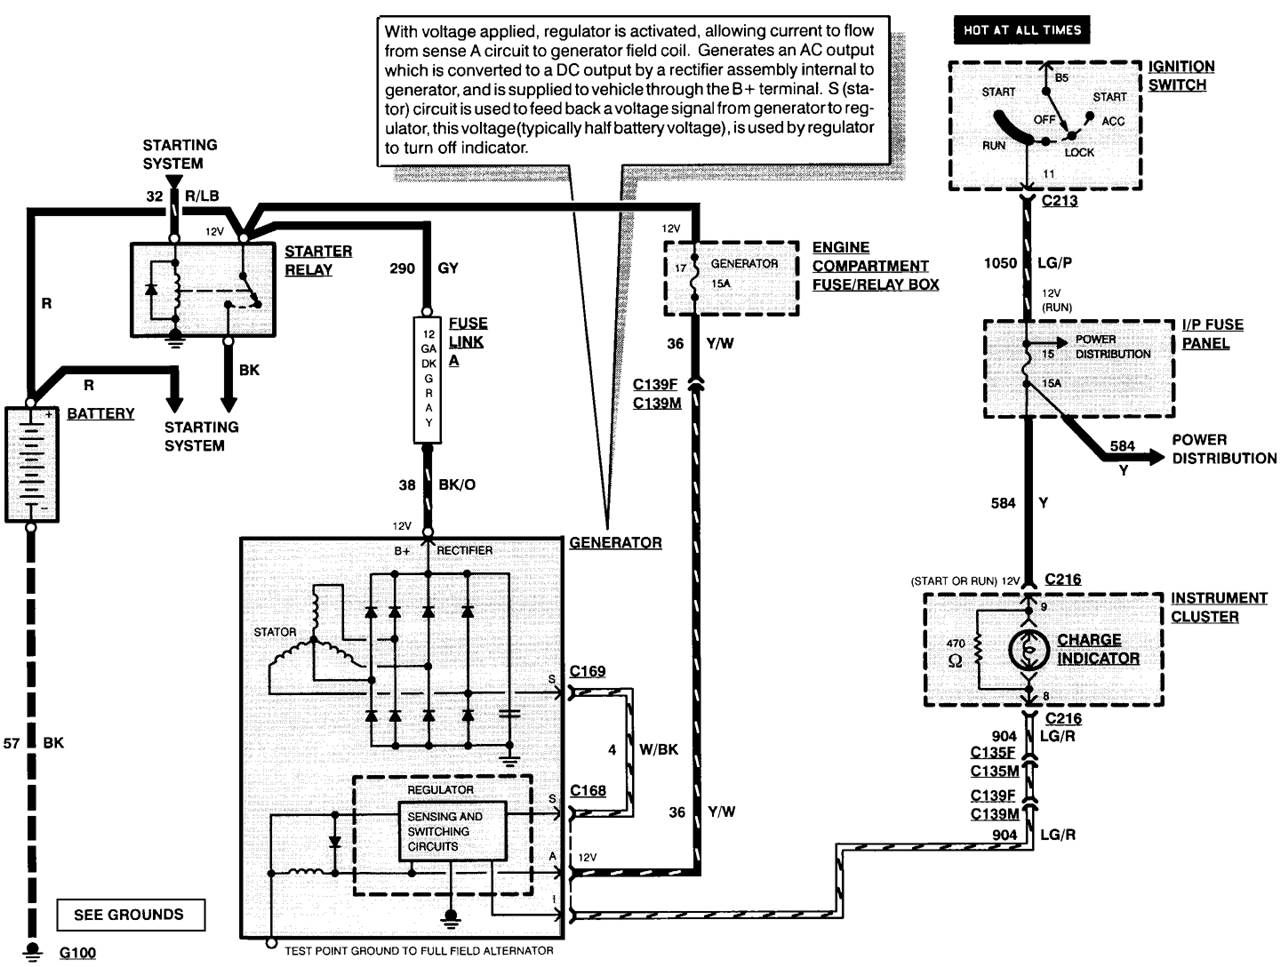 Ford alternator wiring diagram internal regulator ford alternator wiring diagrams carsut understand cars and ford external voltage regulator wiring diagram at alyssarenee.co